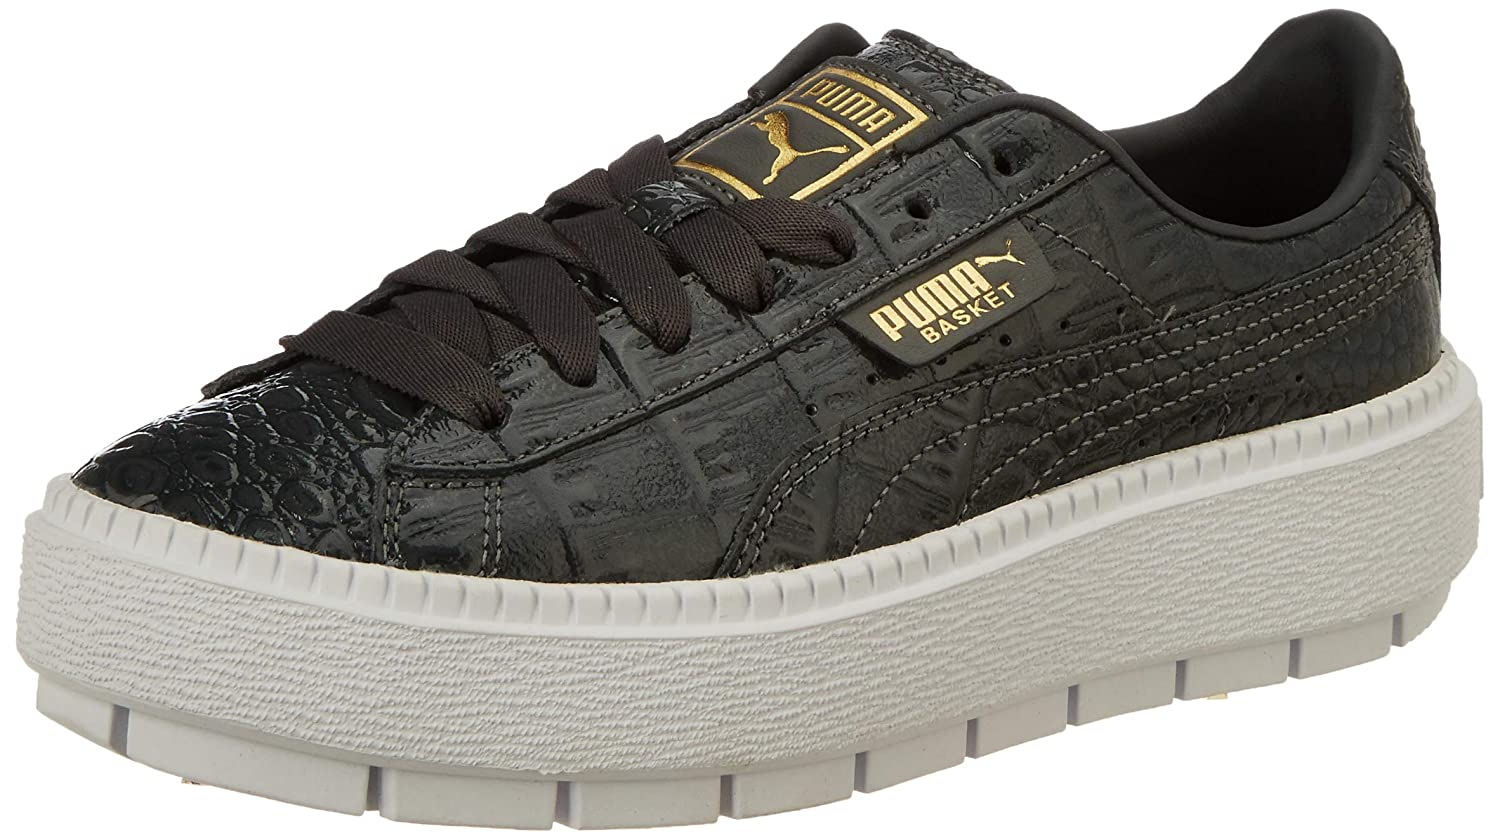 053105c3063d Puma Women s Platform Trace ExoticLuxWn s Sneakers  Buy Online at Low  Prices in India - Amazon.in